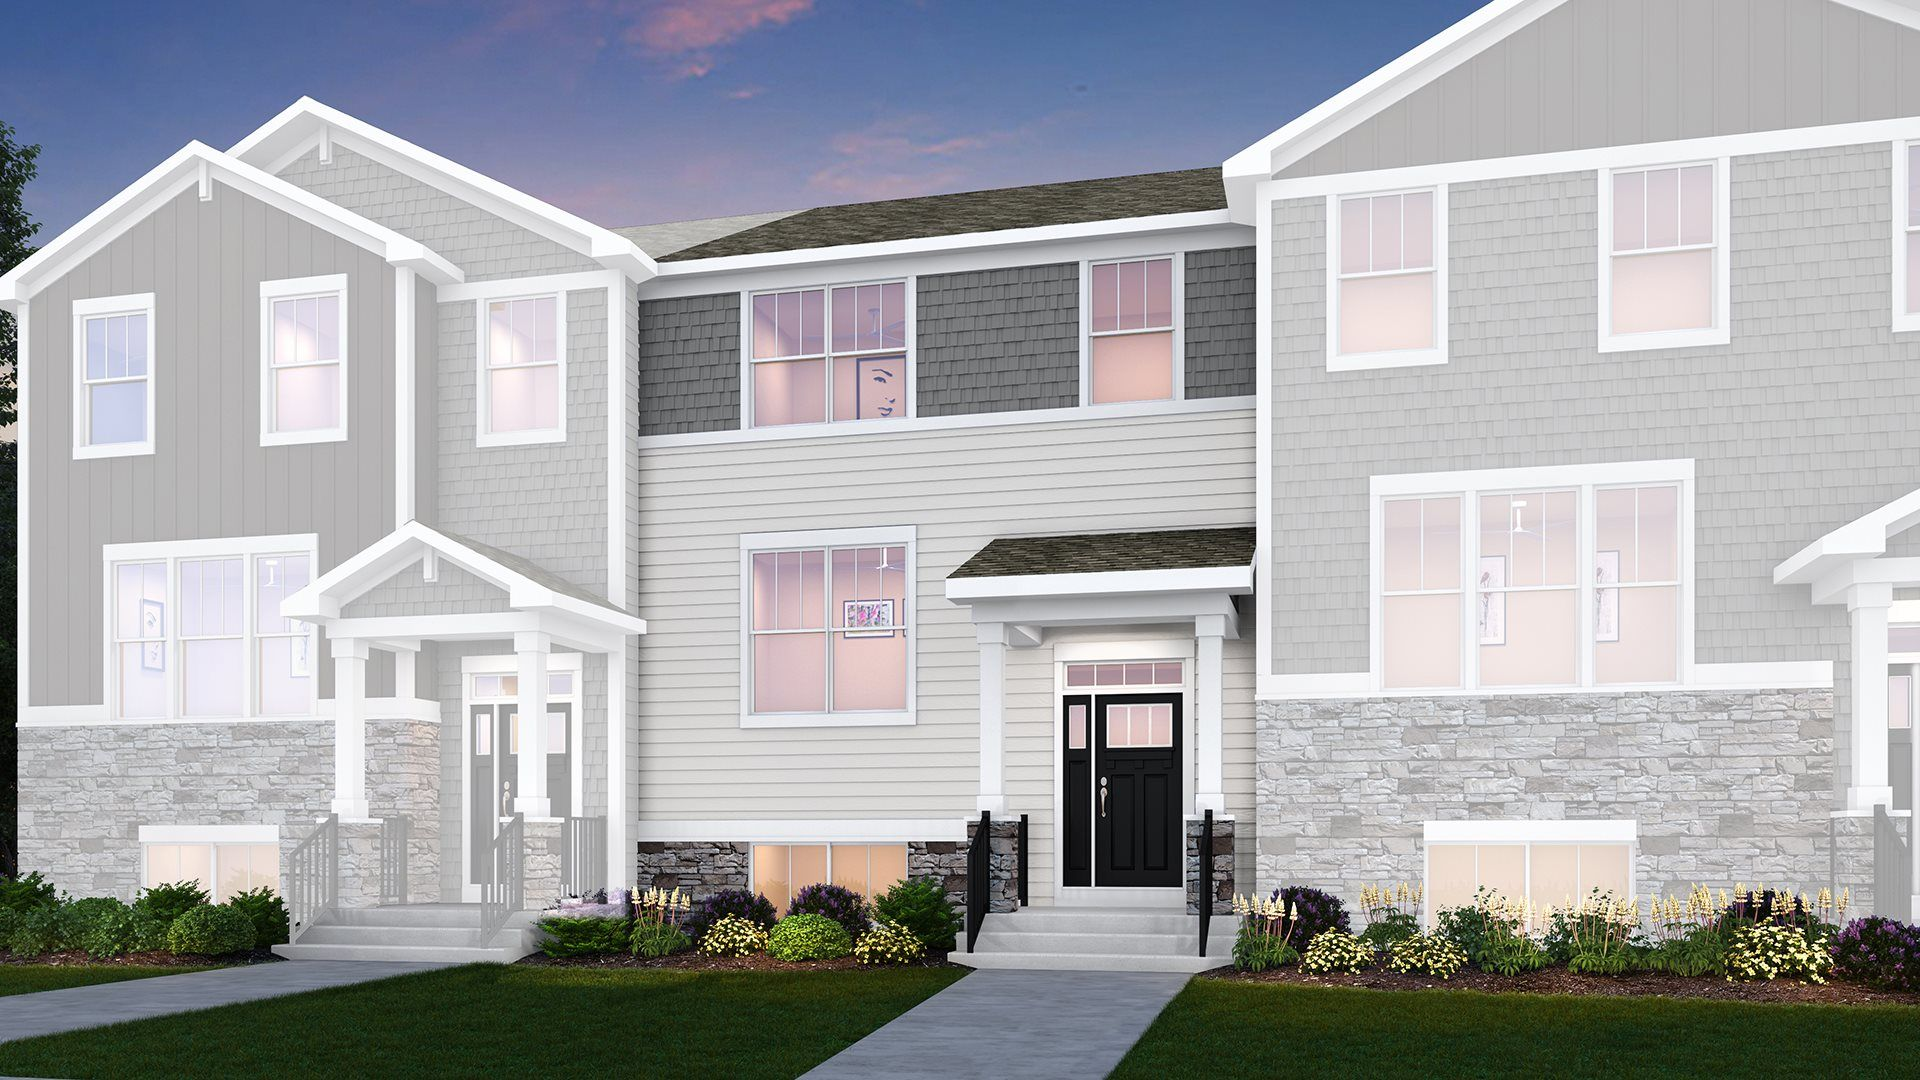 Amherst floorplan with Urban exterior